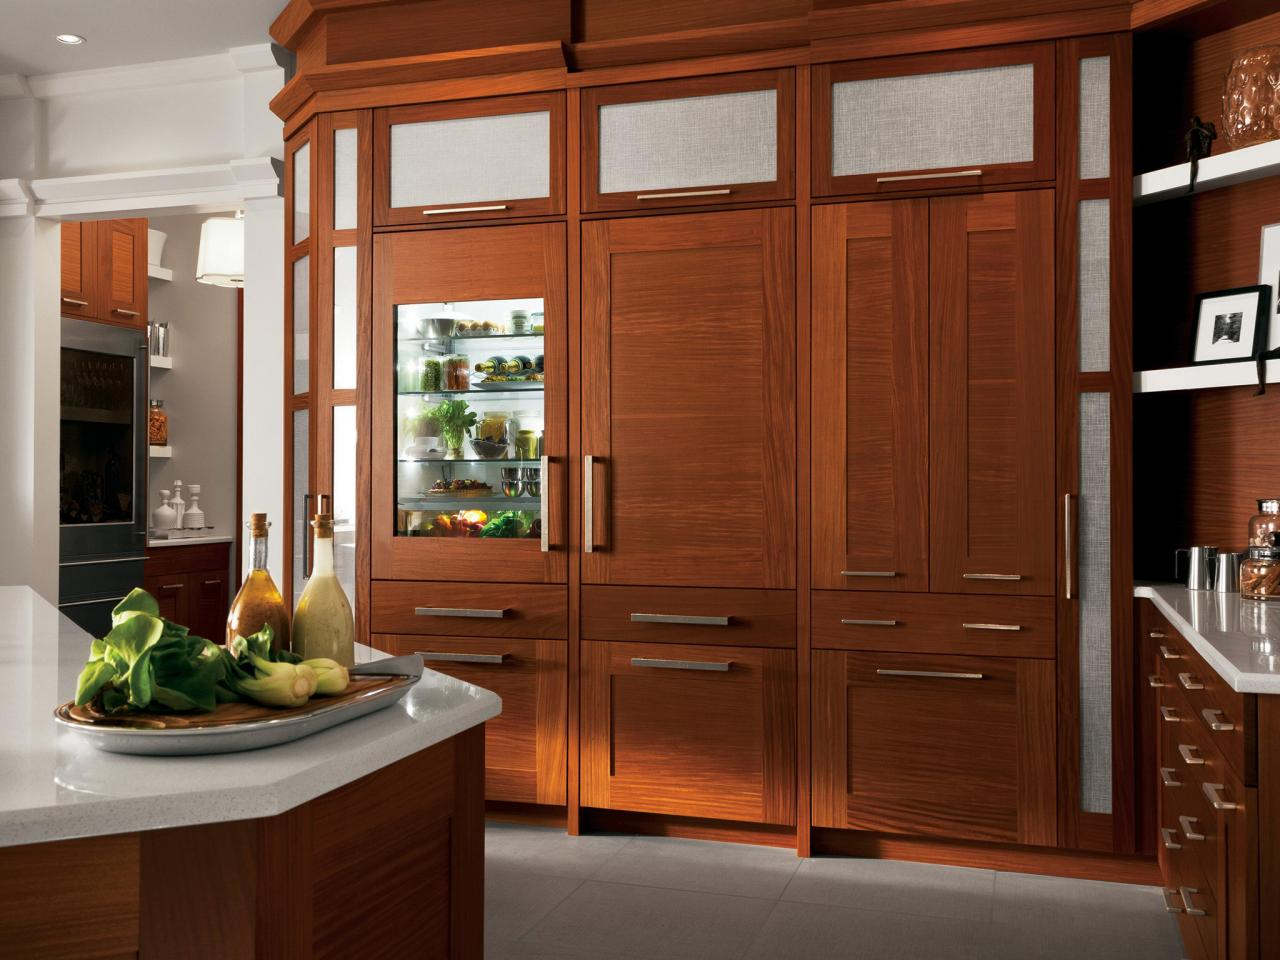 Custom kitchen cabinets pictures ideas tips from hgtv for Wooden kitchen cupboards